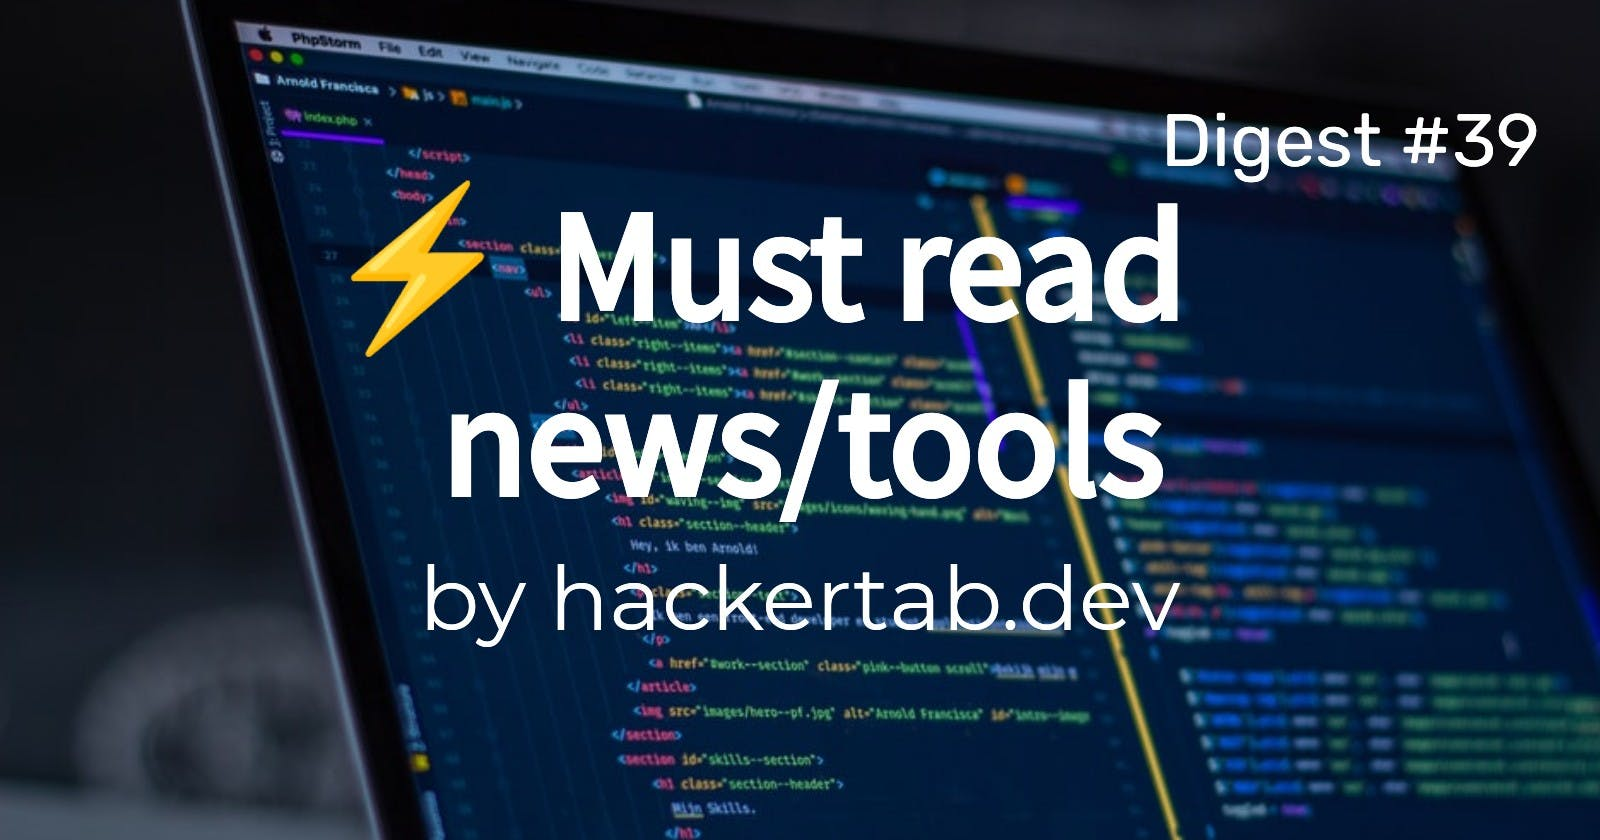 🔥 Trending News, Repos and Products of the day - Digest #39